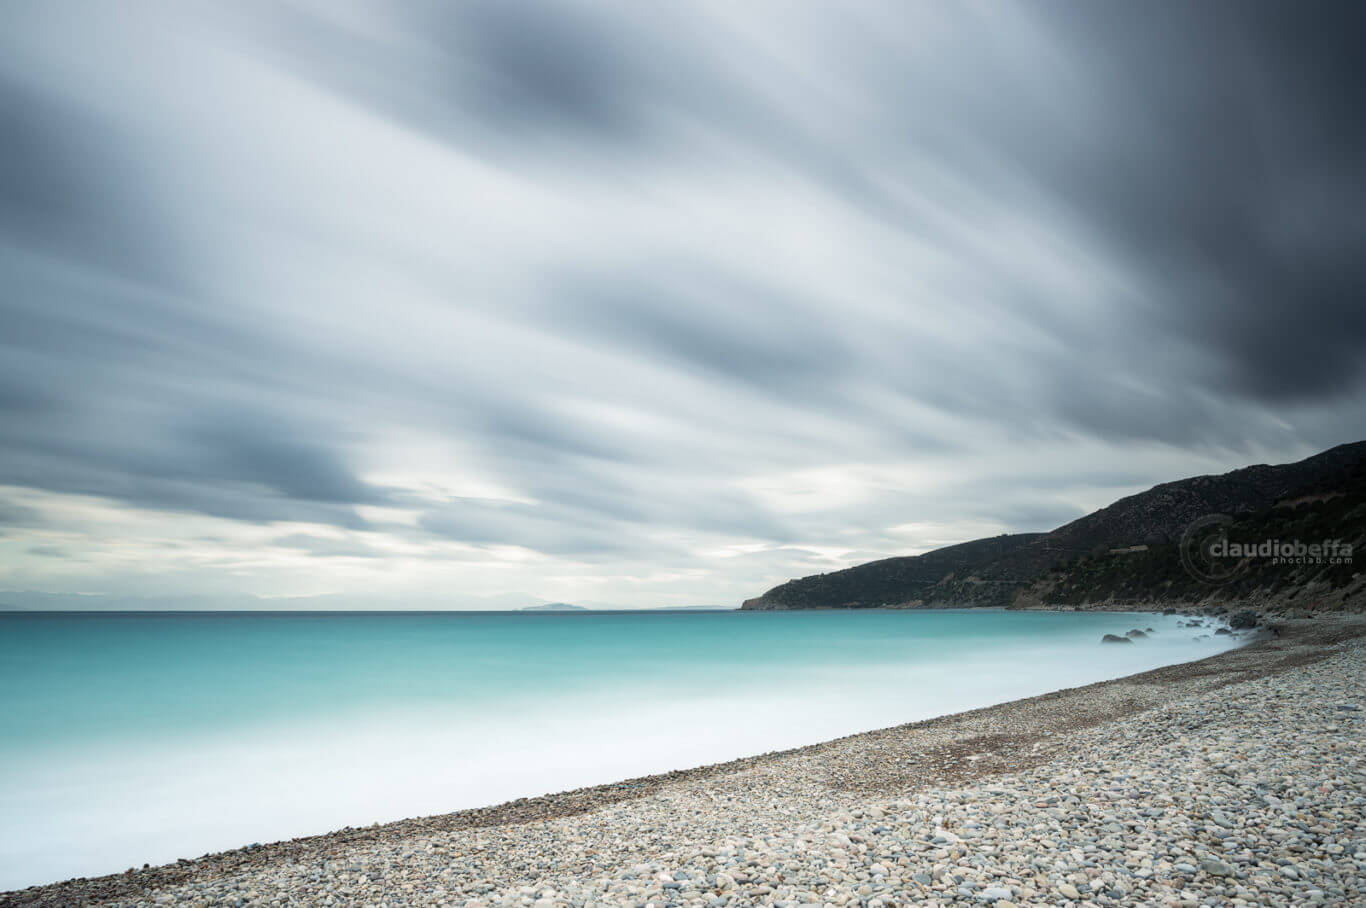 Seascape, Sea, Seashore, Clouds, Storm, Wind, Sardinia, Italy, Before the storm